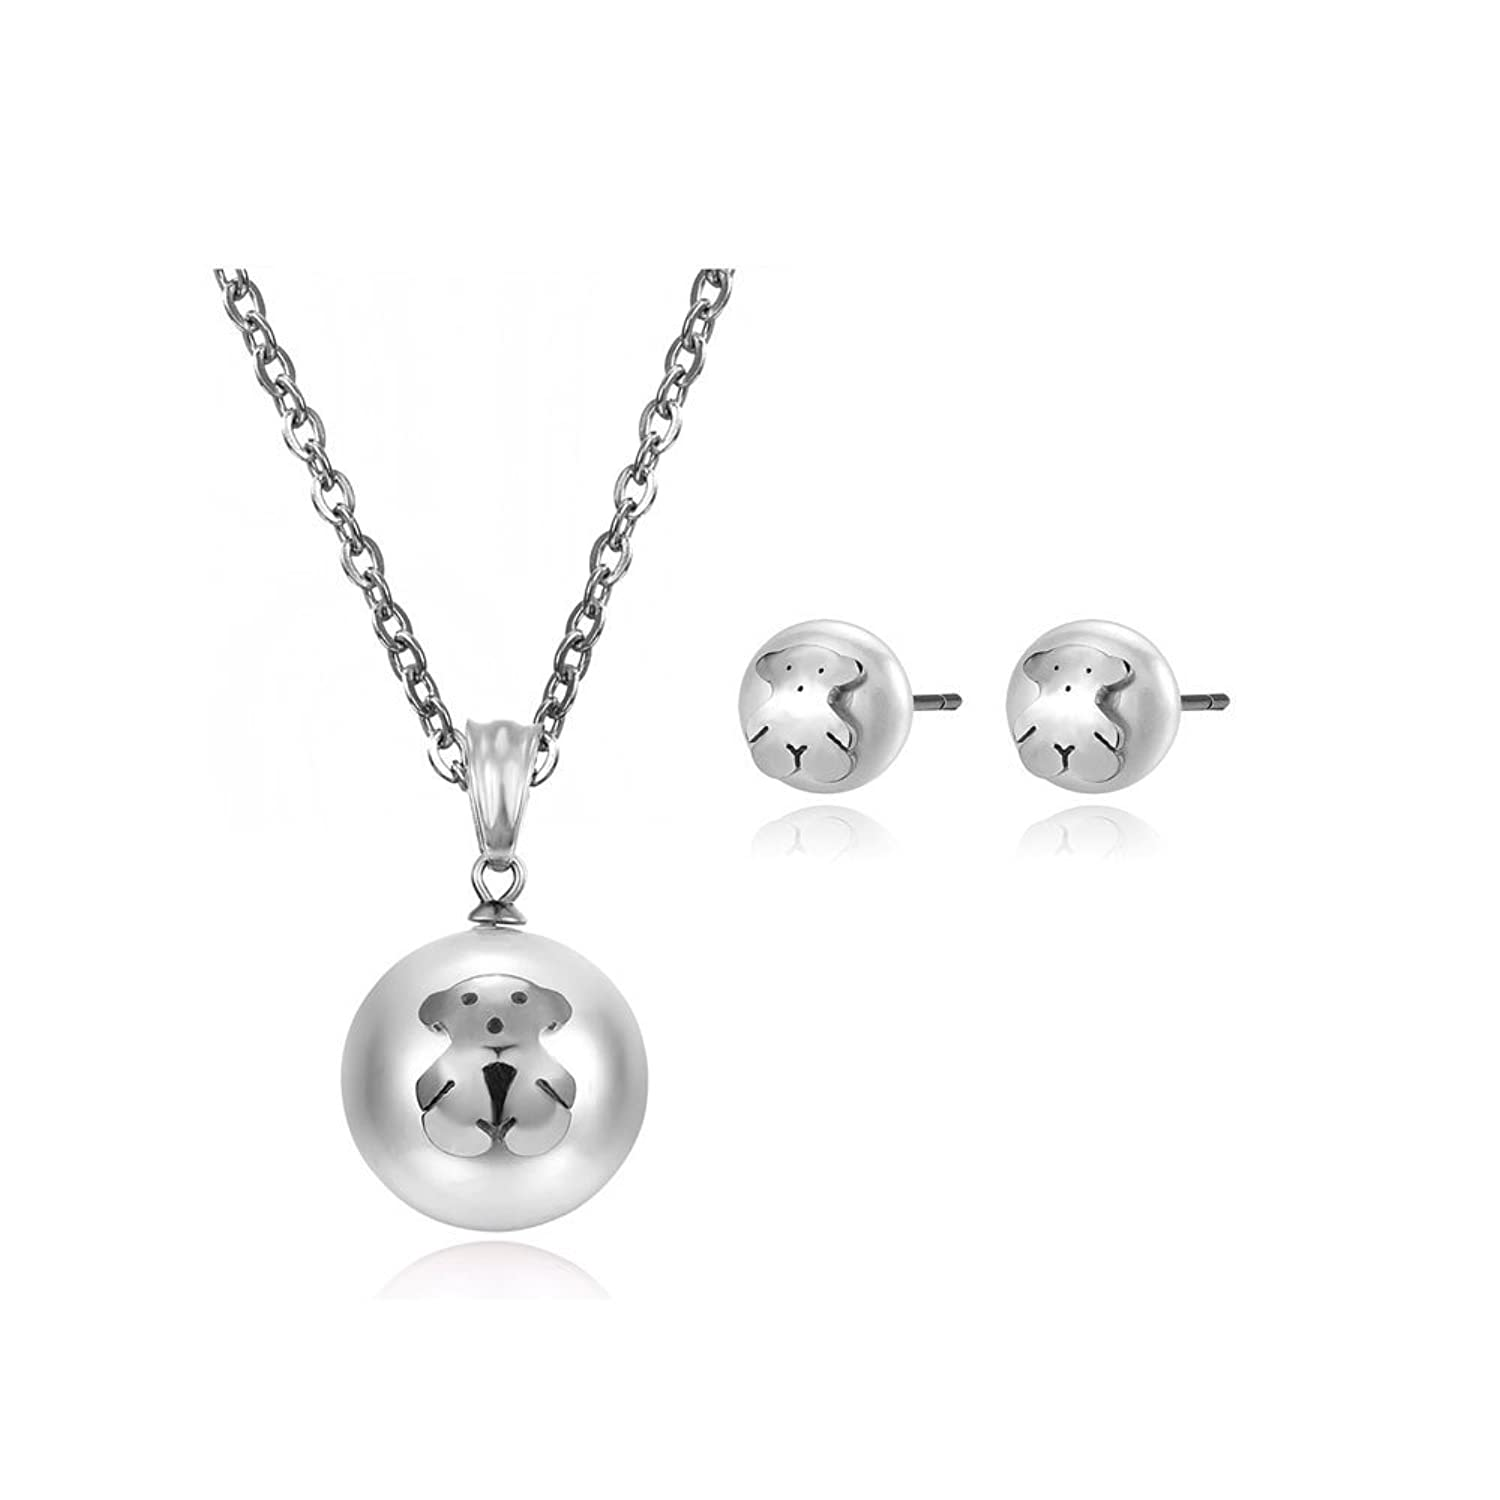 1 Set of Cream Pearl Bear Necklace Pendant and Stud Earrings with Stainless Steel Necklace Chain (Silver)